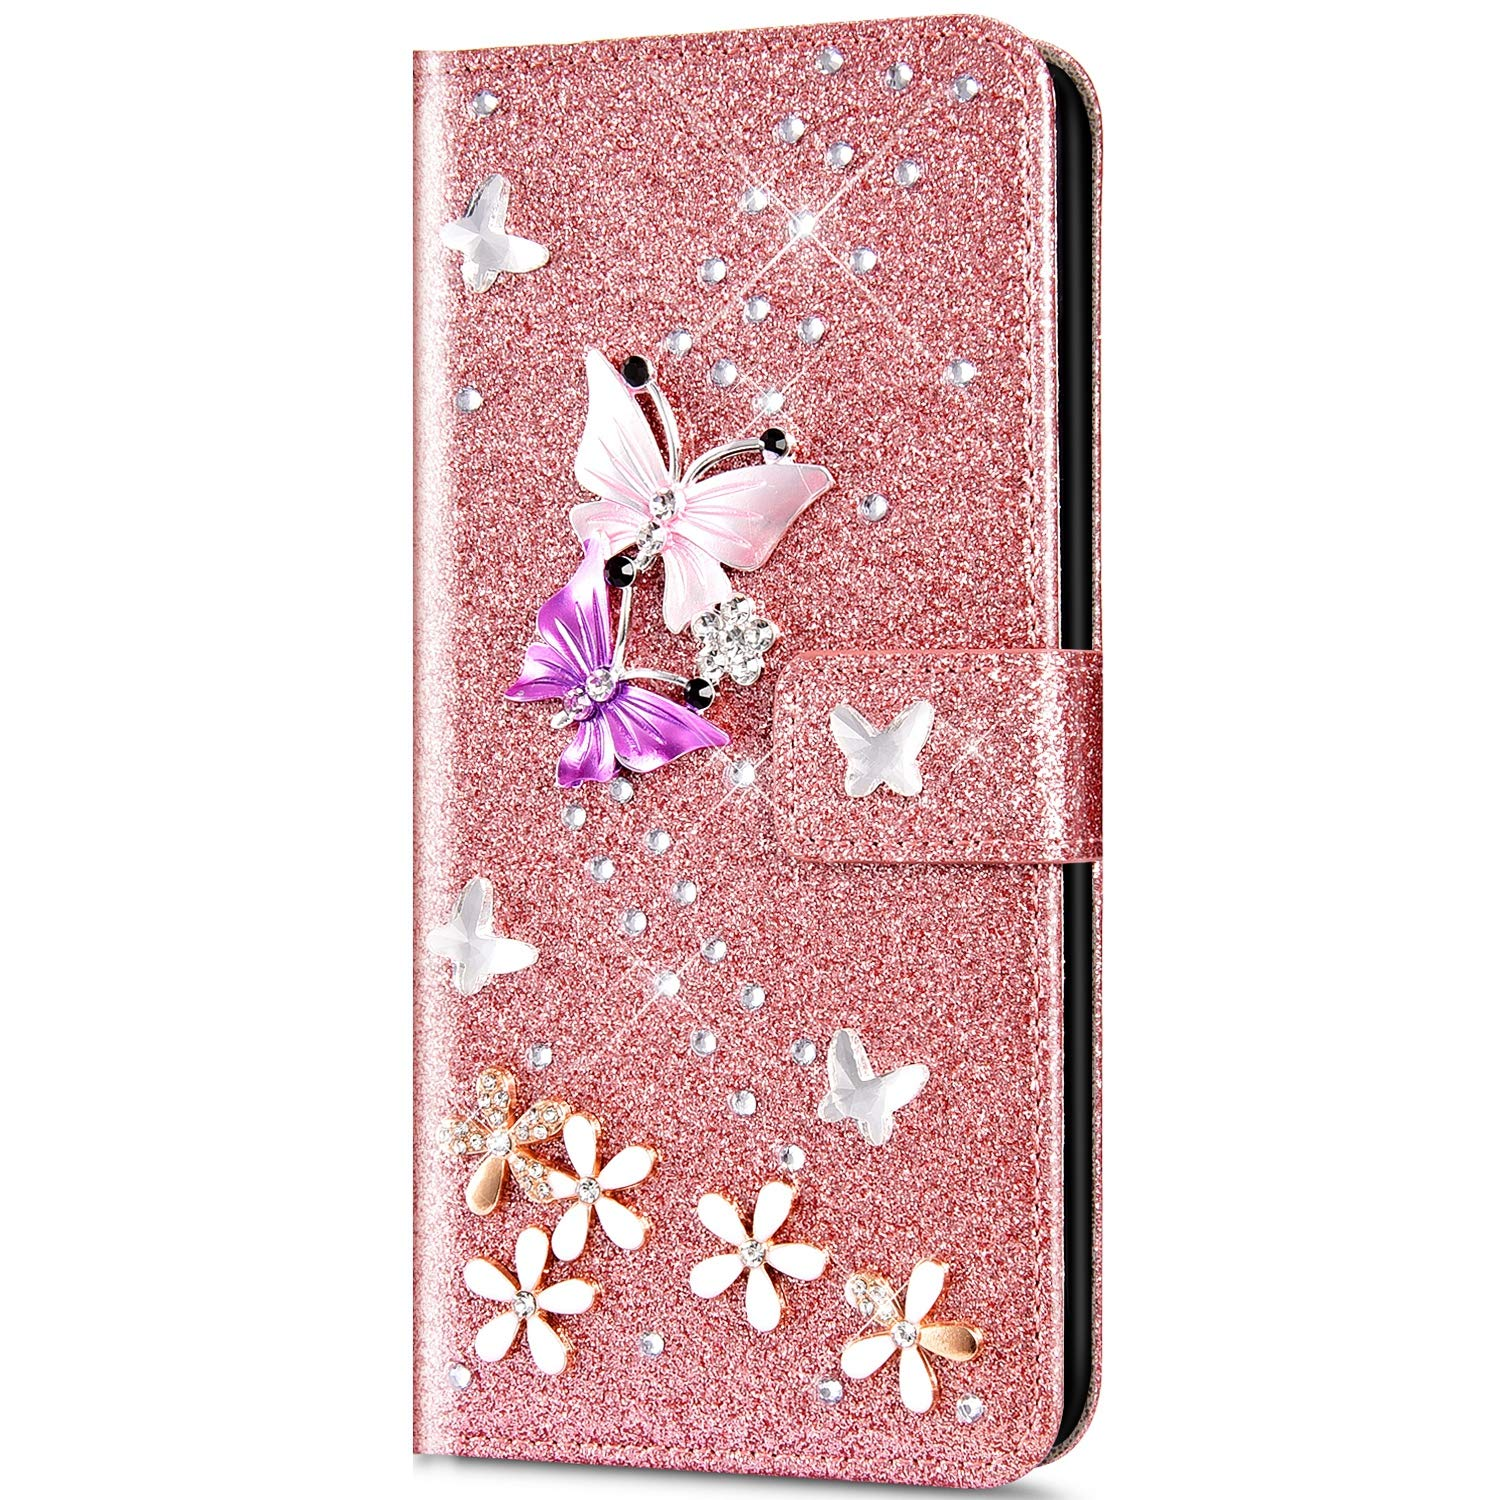 Case for Galaxy S10e Flip Case Premium PU Leather Wallet Case 3D Handmade Glitter Bling Shiny Diamond Butterfly with Card Slots Kickstand for Galaxy S10e,Rose gold by ikasus